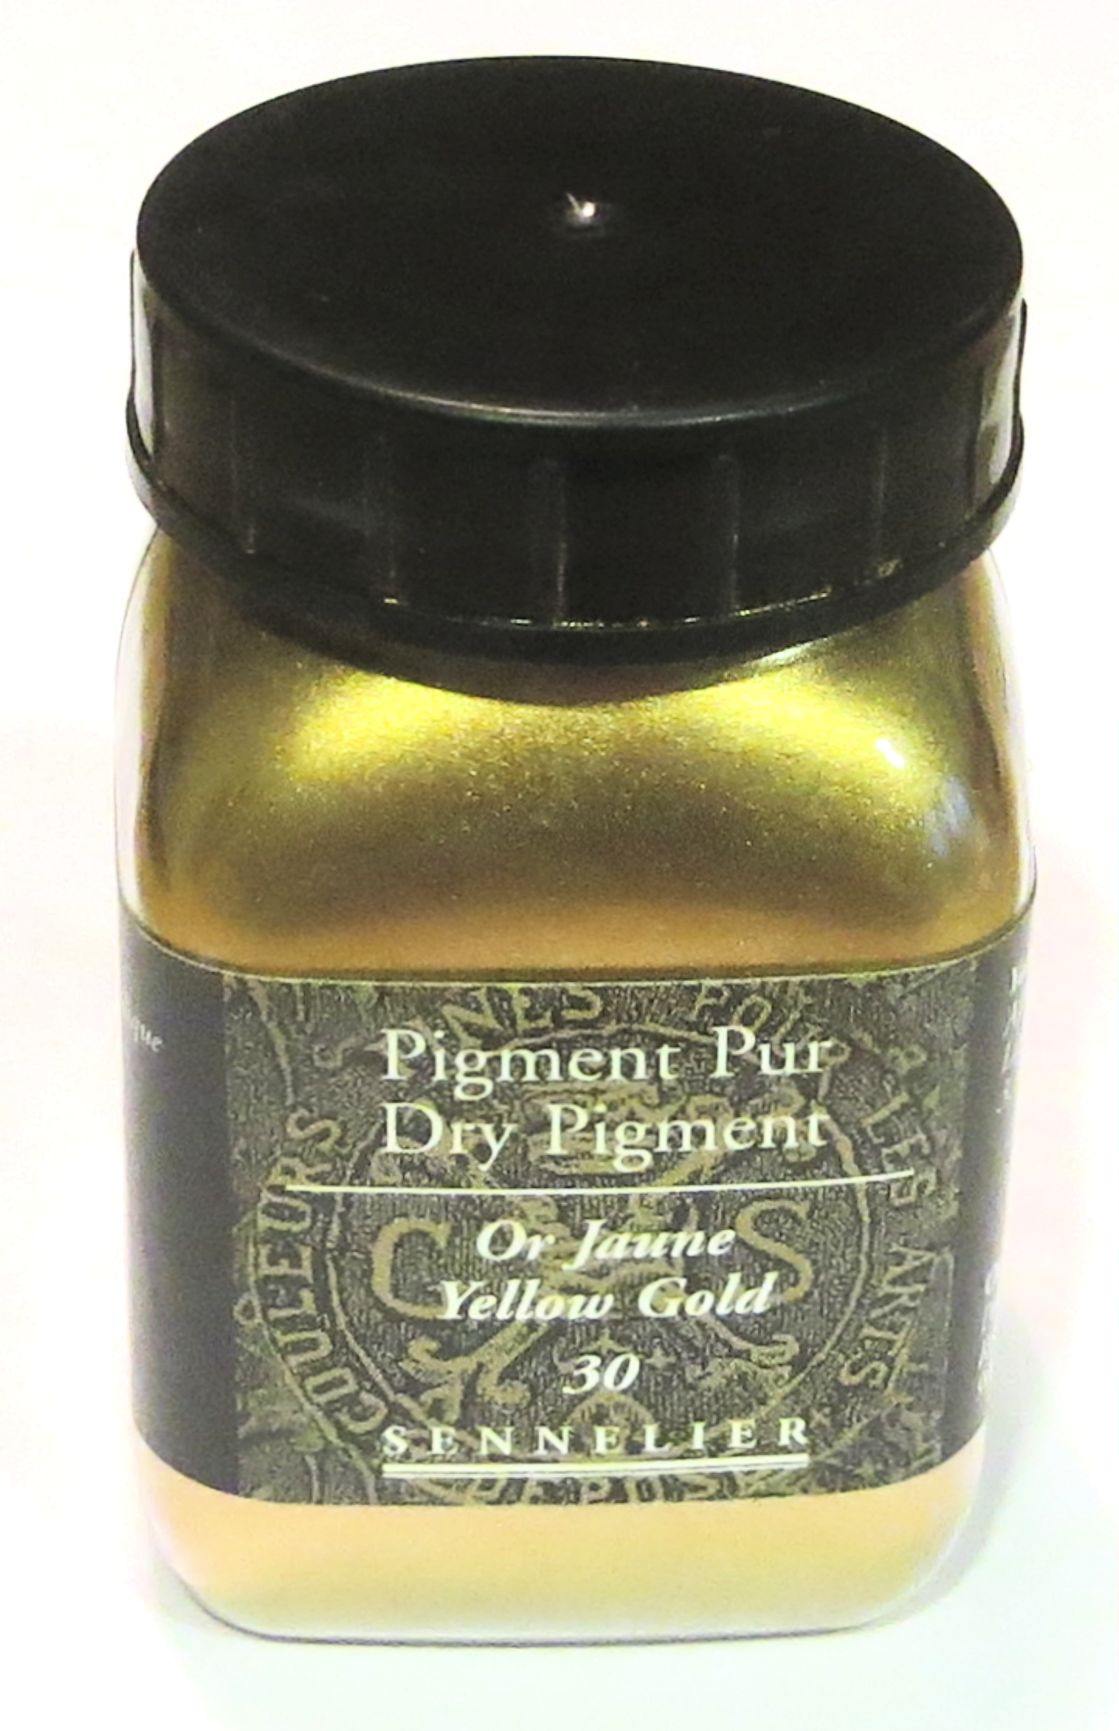 "Pigments Sennelier ""Or Jaune"" 30"